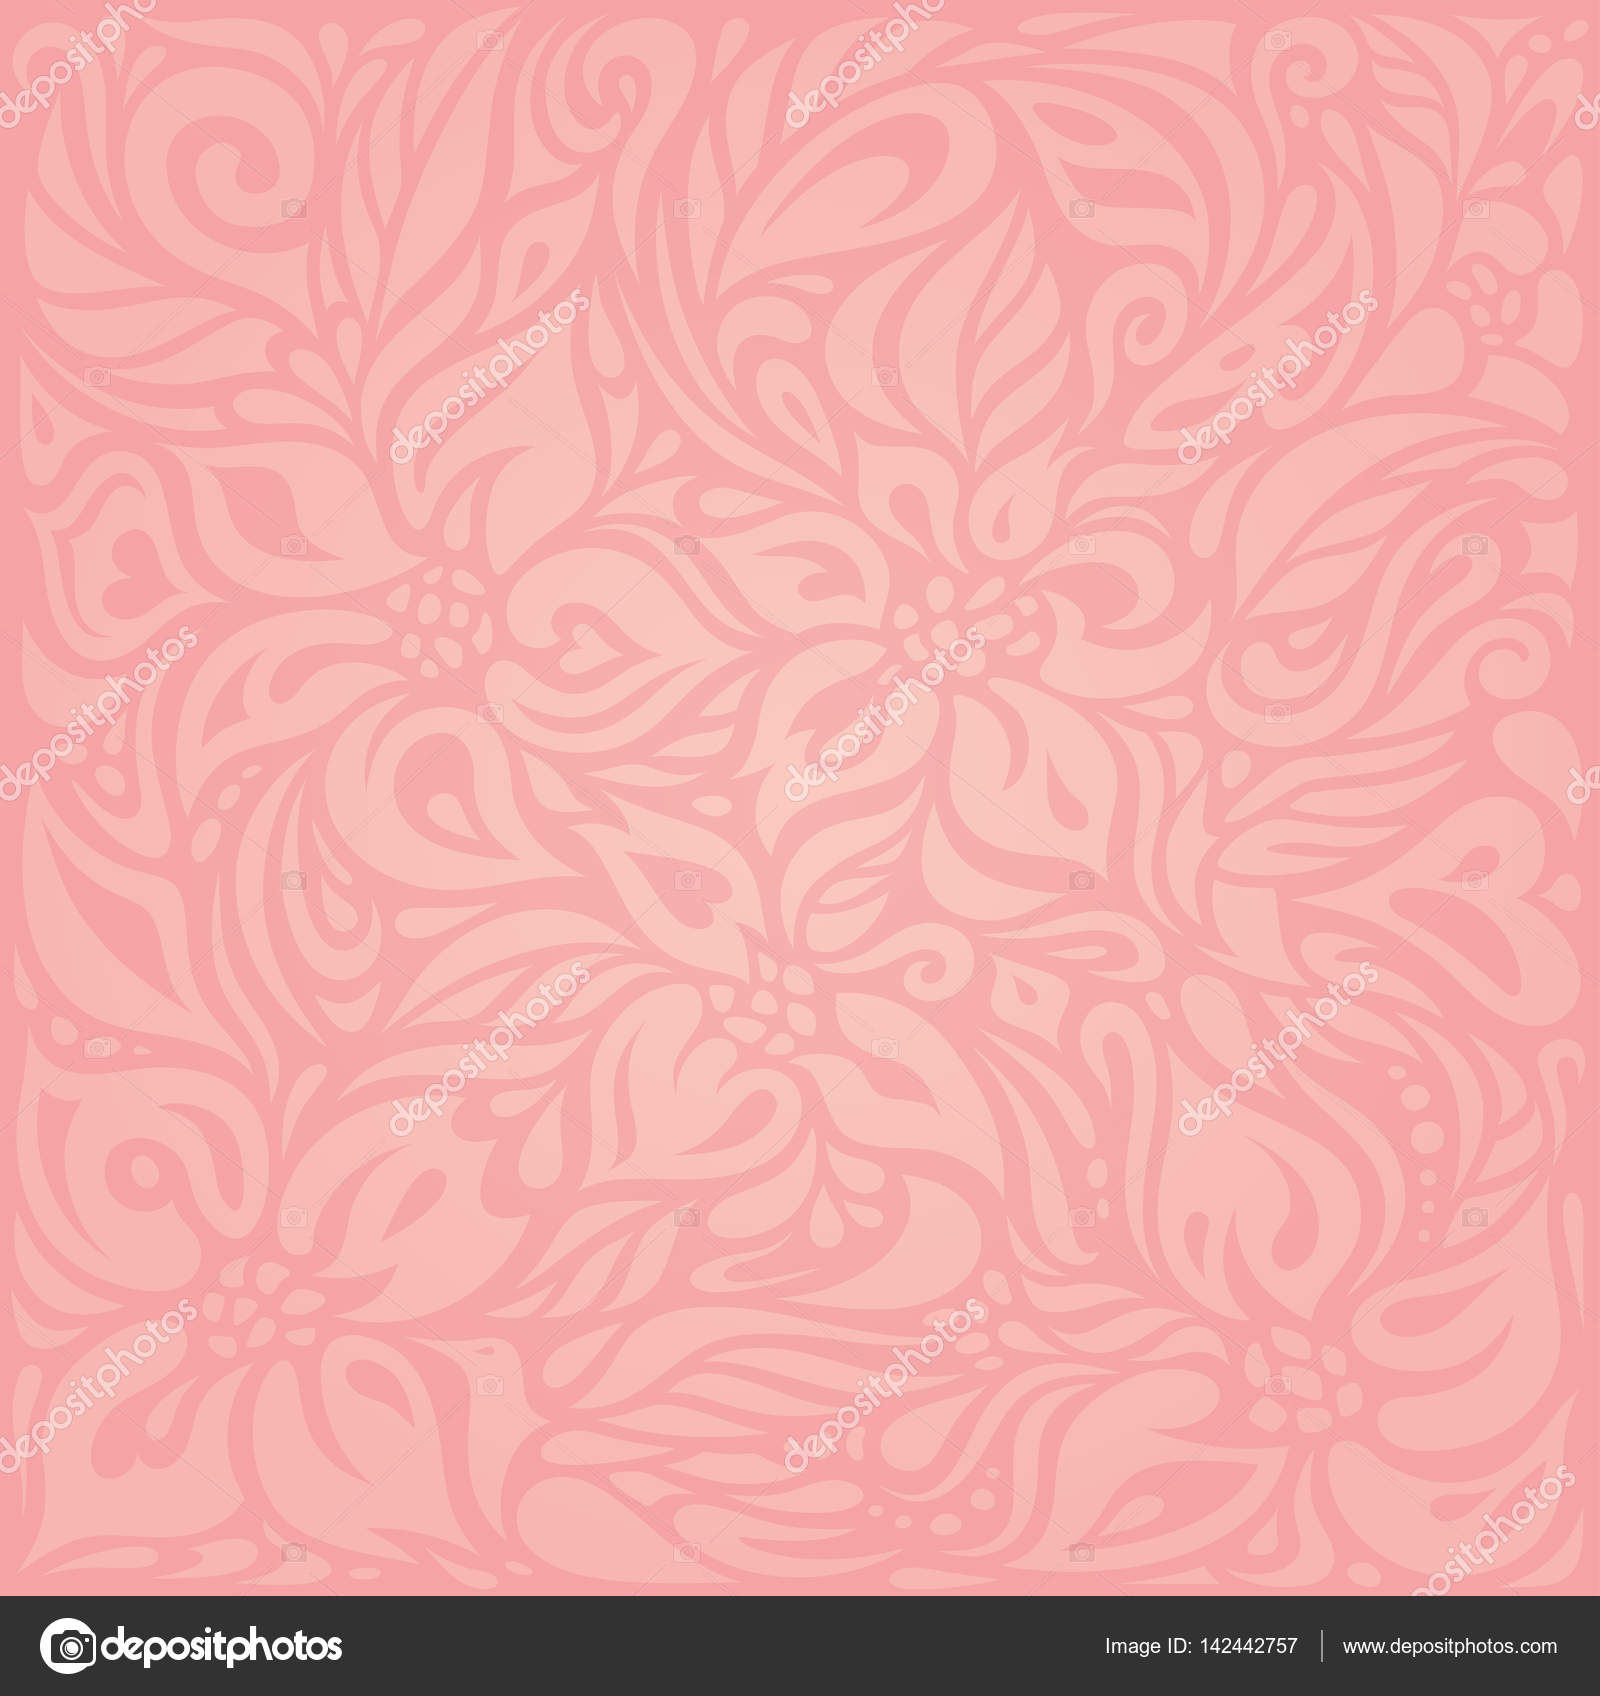 Floral Pink Vector Wallpaper Design Stock Vector C Erinvilar